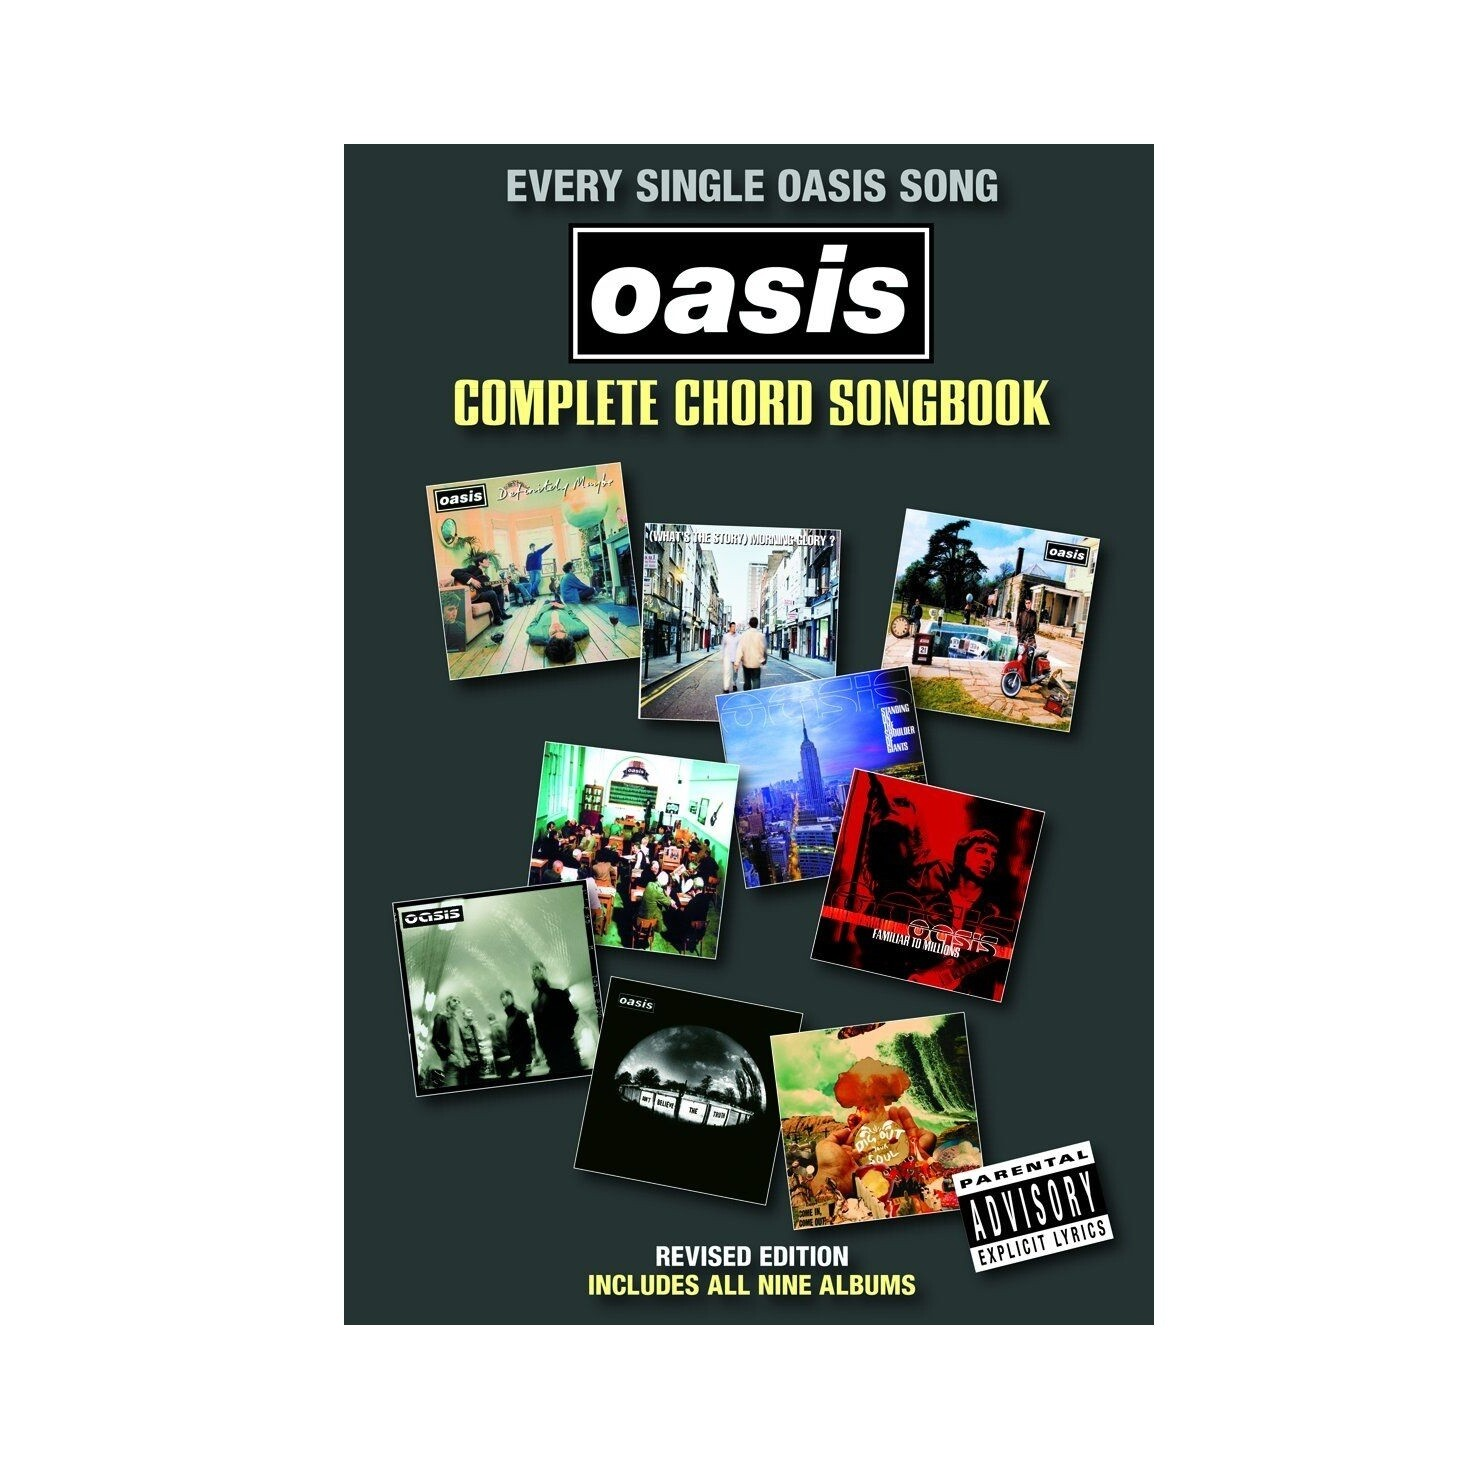 Oasis - Complete Chord Songbook